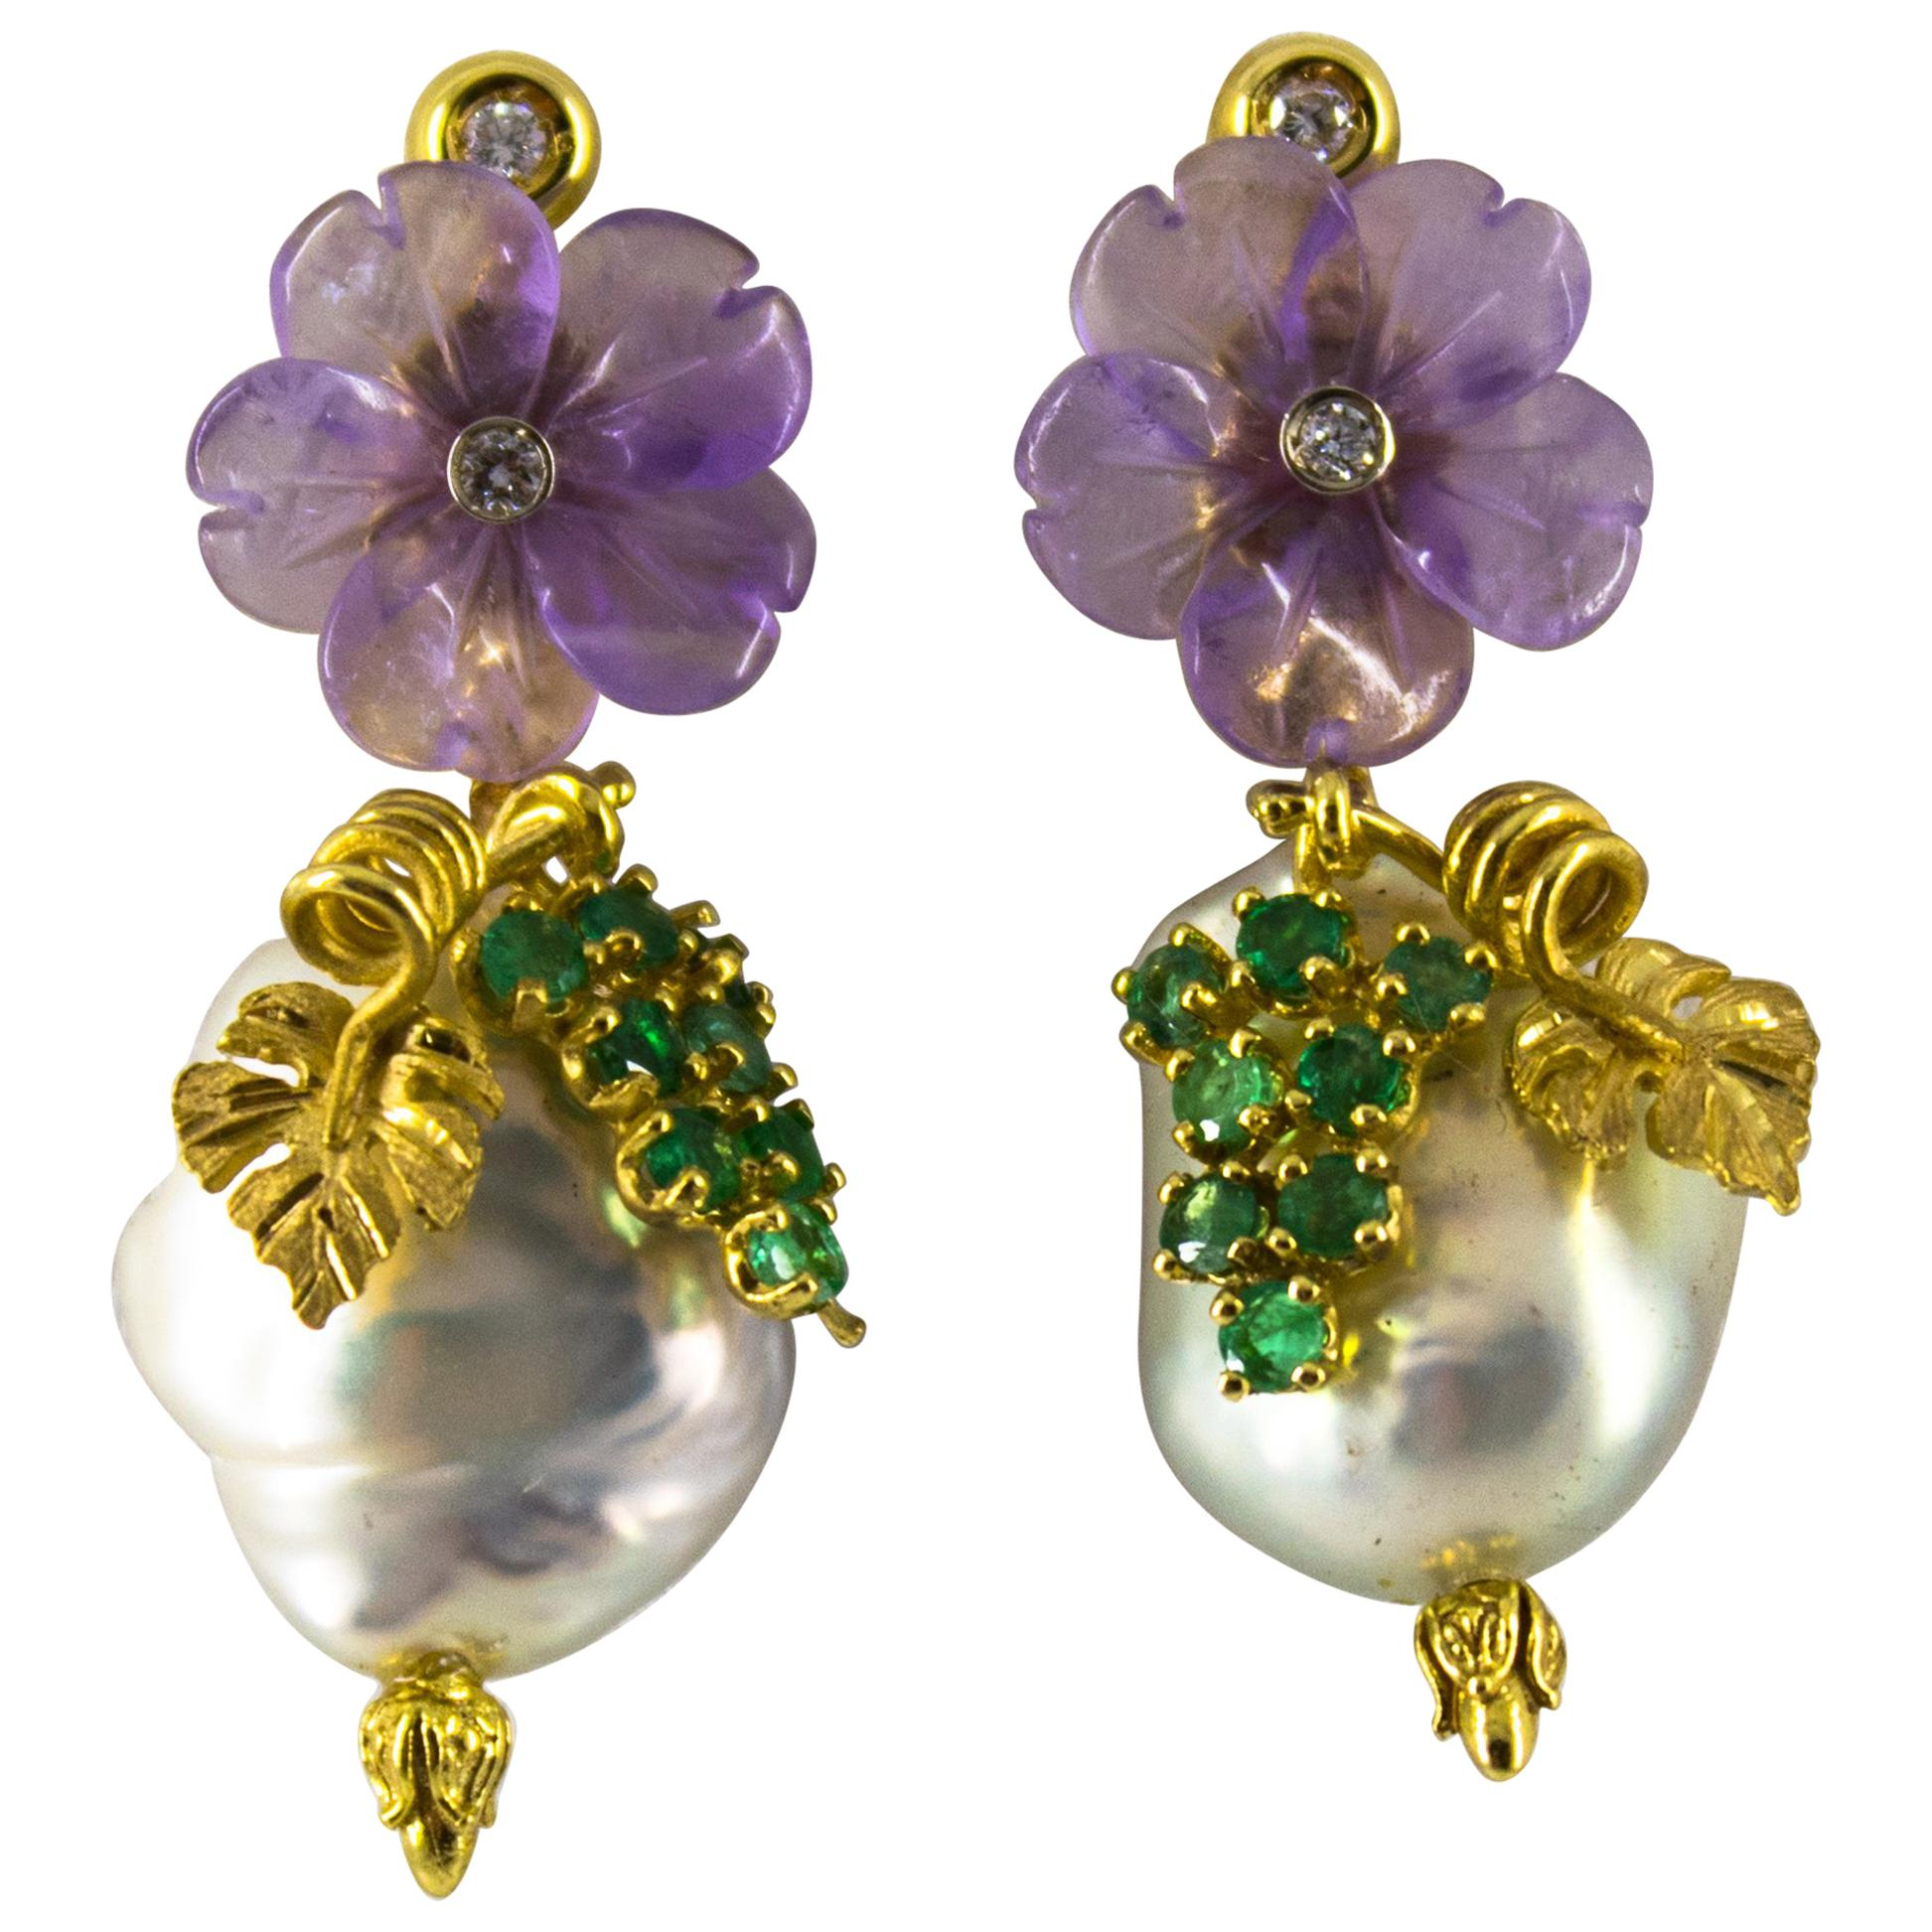 0.90 Carat Emerald Amethyst Pearl 0.12 Carat White Diamond Yellow Gold Earrings